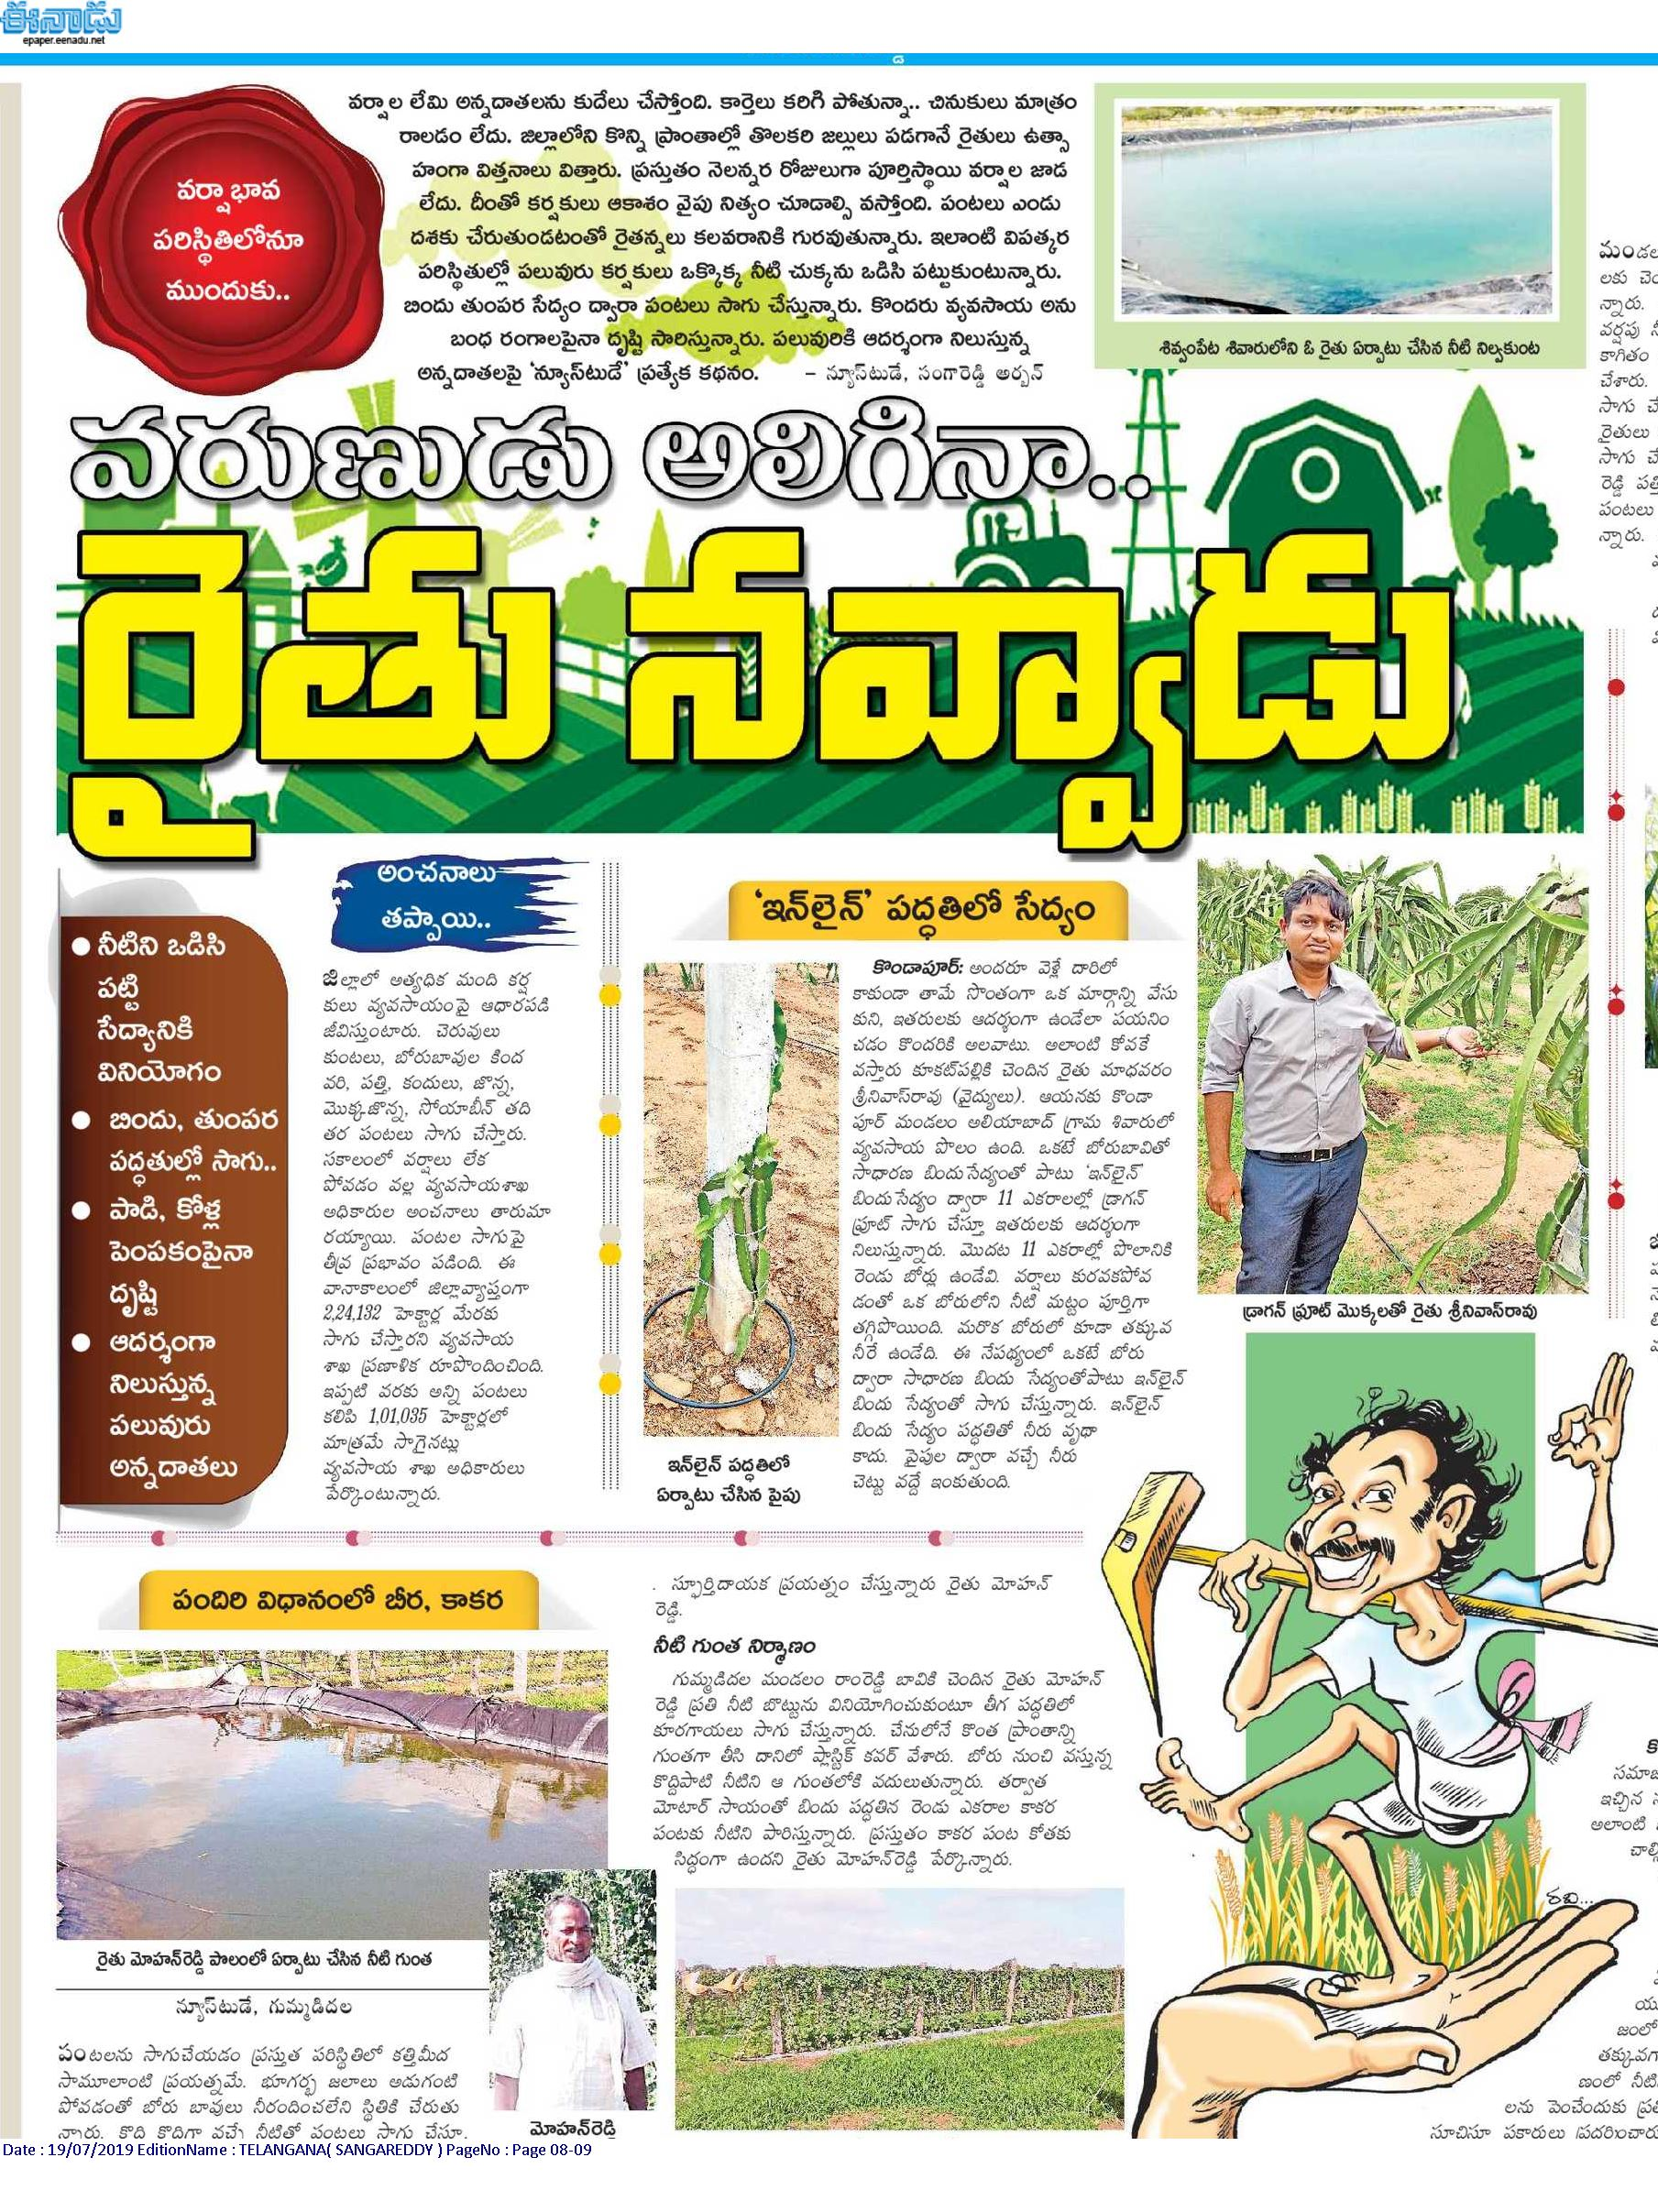 Our largest dragon-fruit farm story printed one of most popular Eenadu newspaper